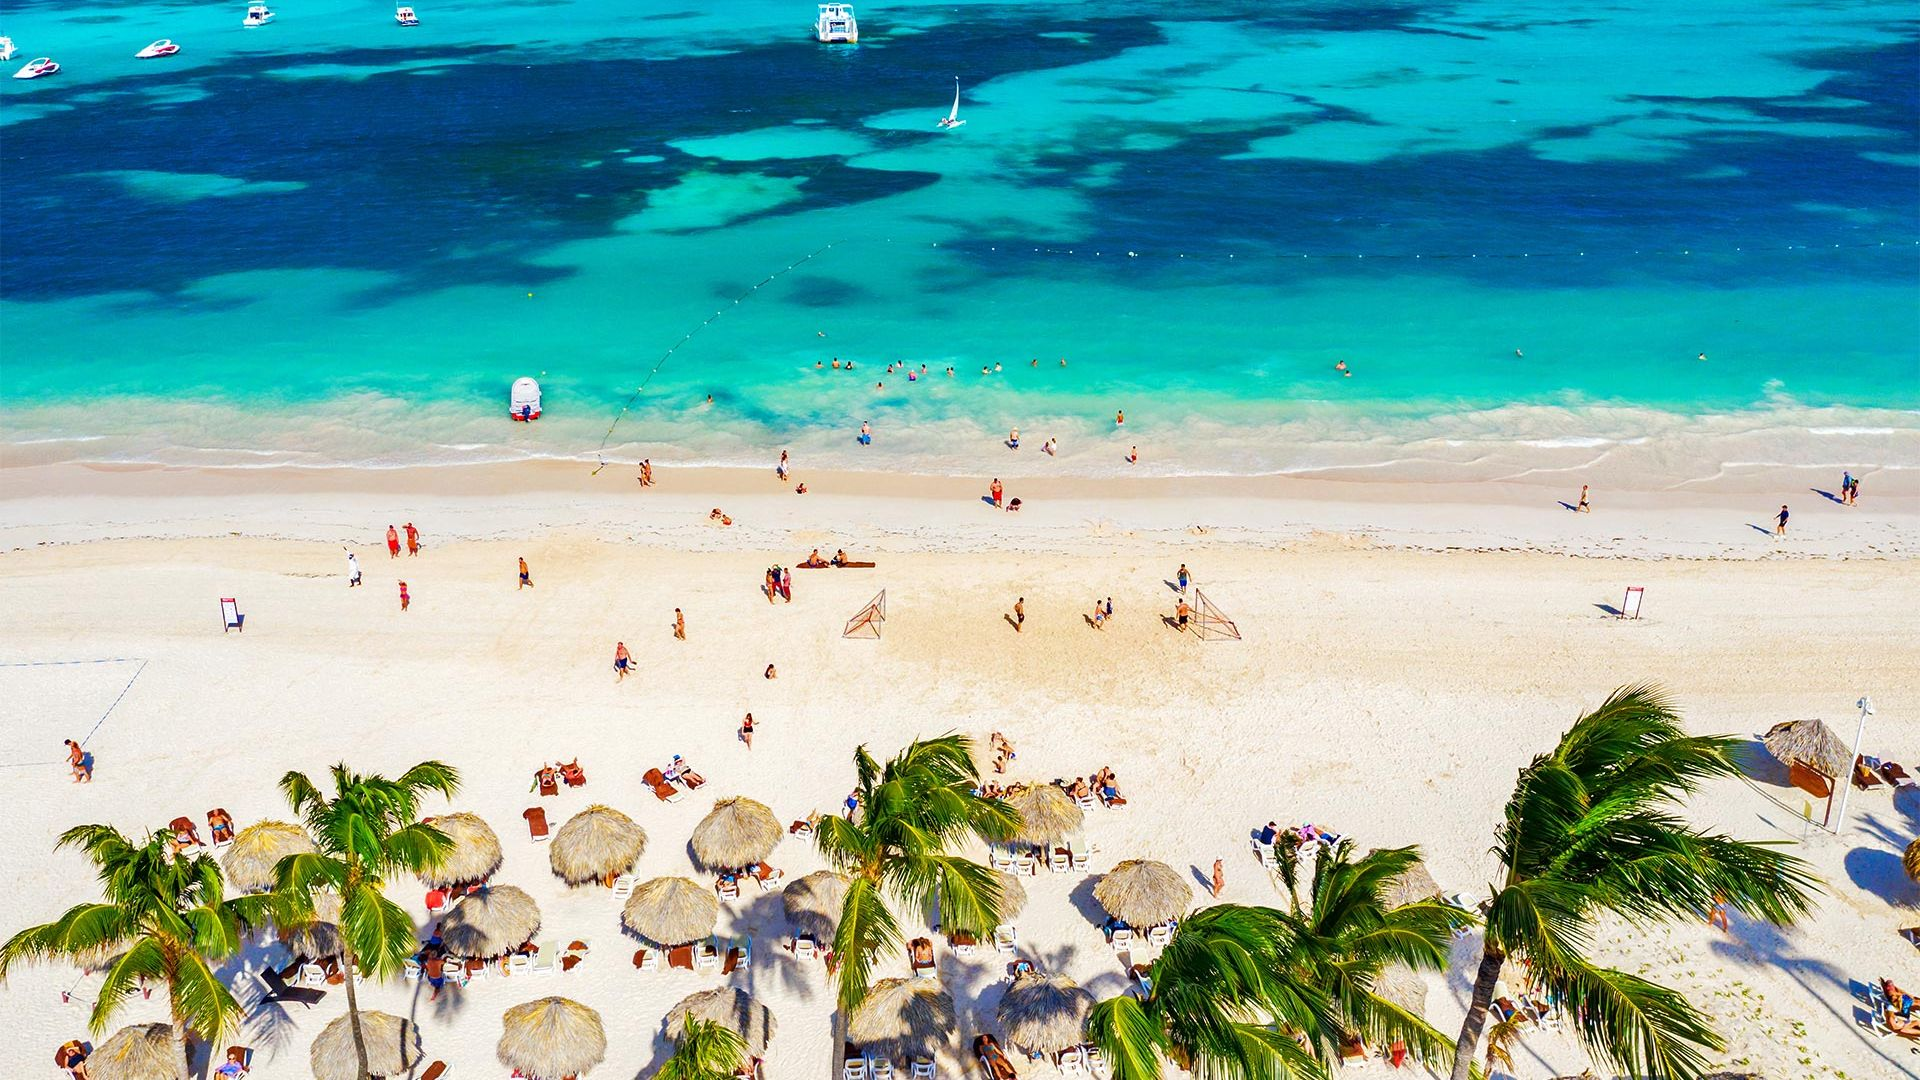 Sejur charter Majestic Resort Punta Cana, 9 zile - noiembrie 2021